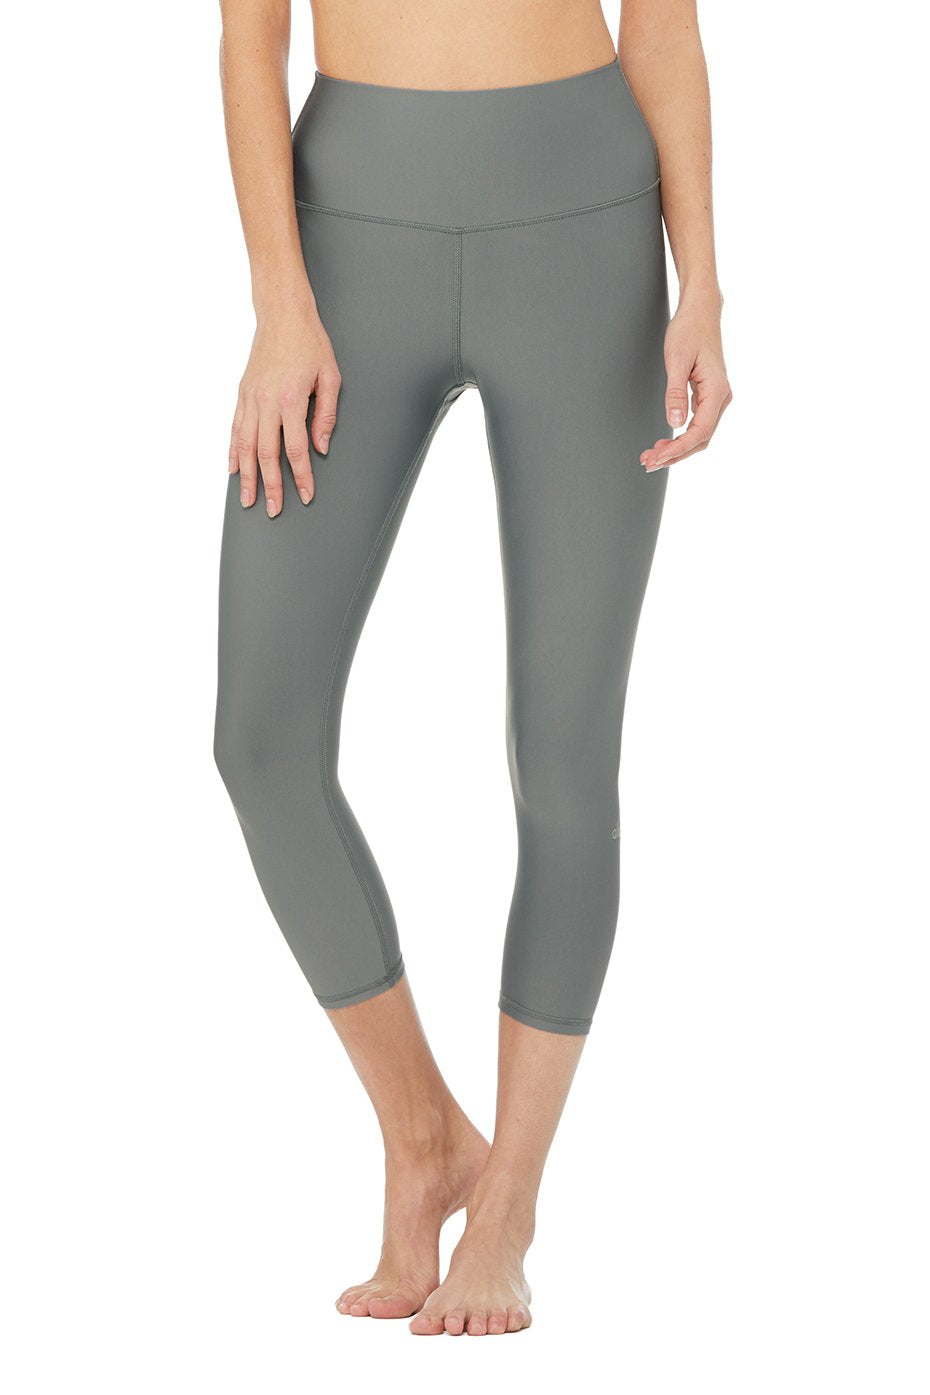 Alo Yoga High-Waist Airlift Capri - Concrete